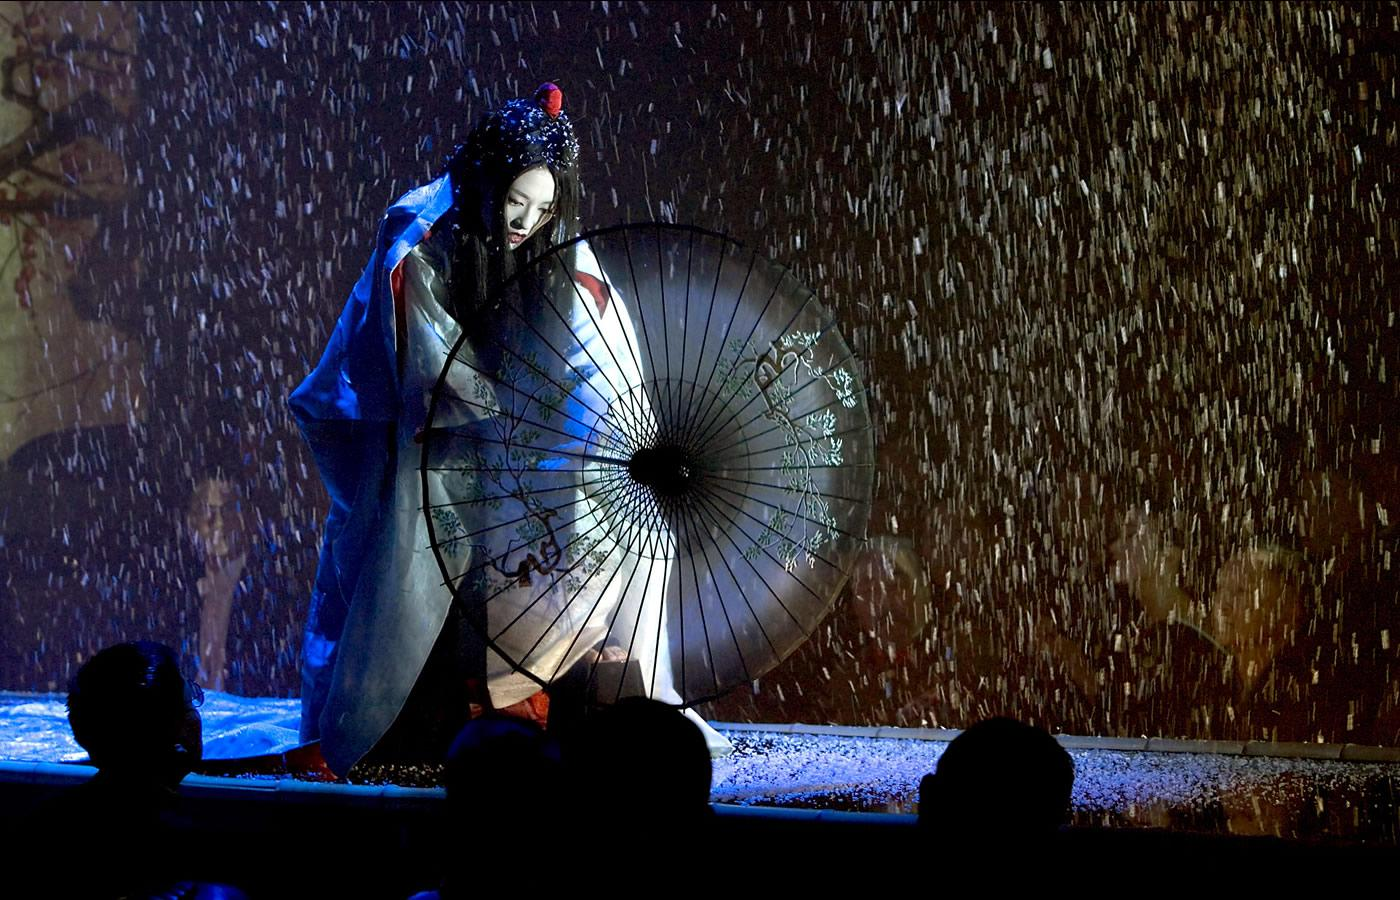 Memoirs of a geisha   62005   High Quality and Resolution 1400x900